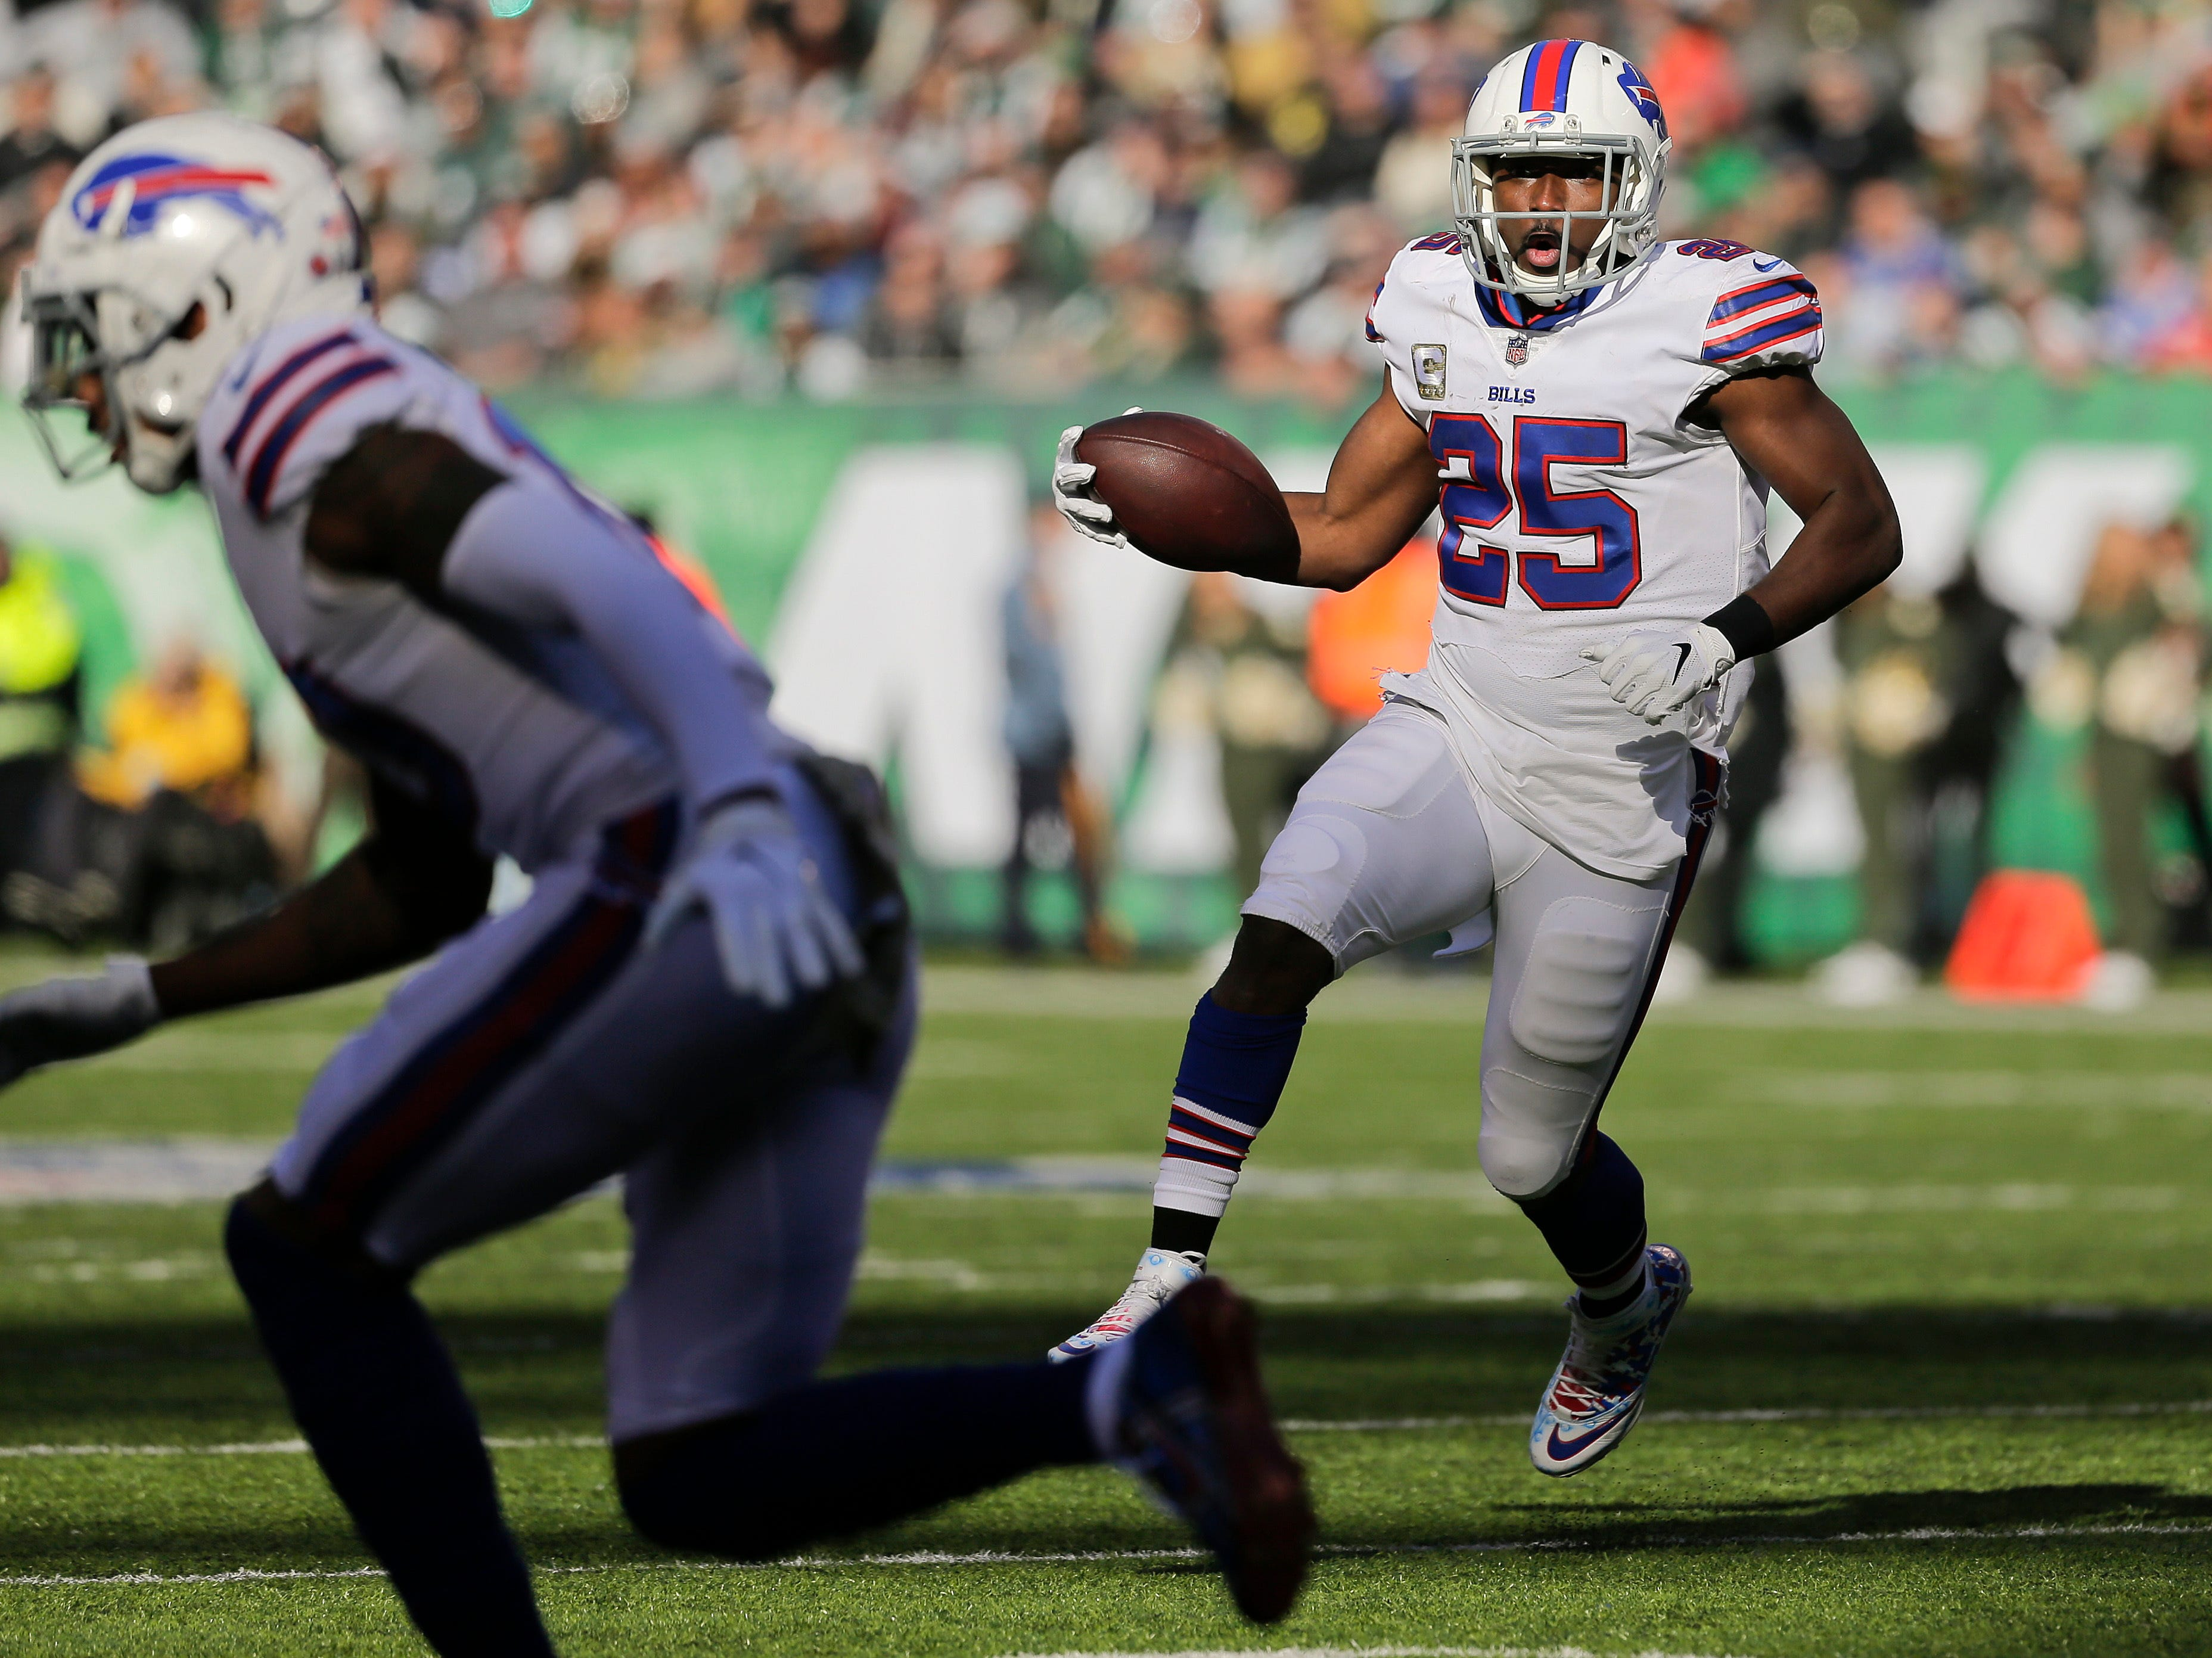 Buffalo Bills running back LeSean McCoy (25) runs the ball against the New York Jets during the second quarter of an NFL football game, Sunday, Nov. 11, 2018, in East Rutherford, N.J. (AP Photo/Seth Wenig)